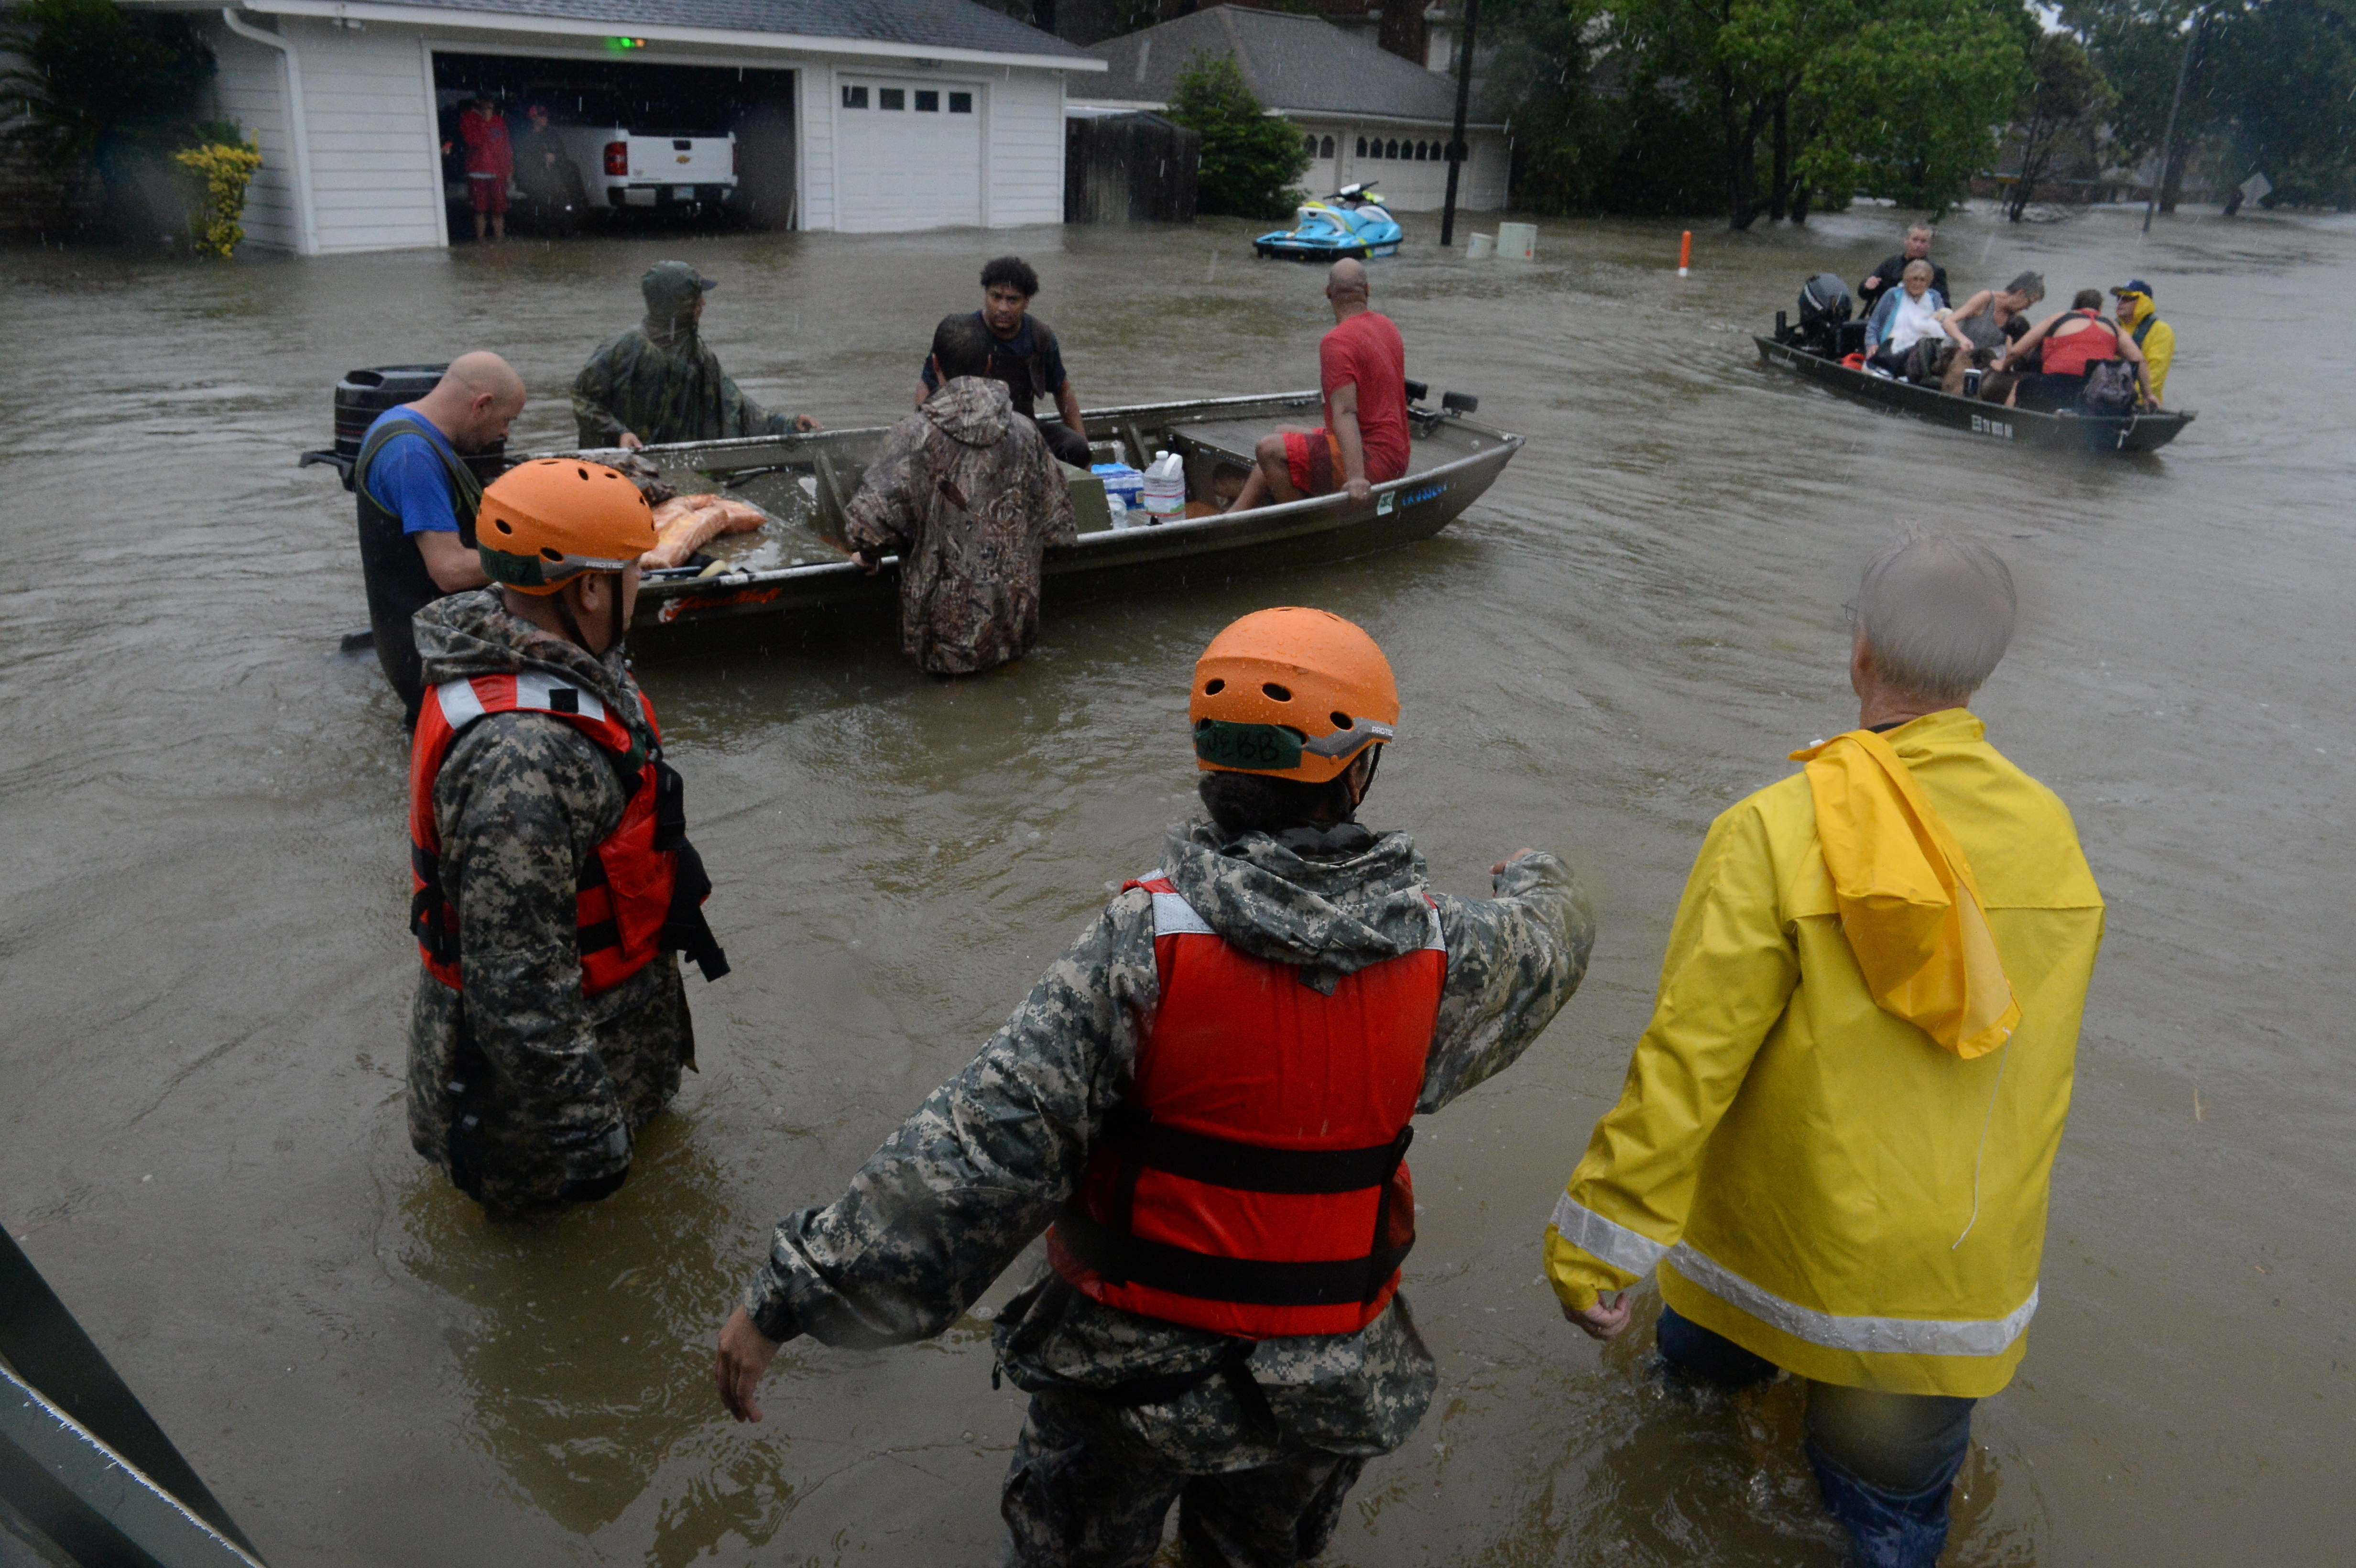 Texas National Guardsmen work alongside first responders to rescue local citizens from severe flooding in Cypress Creek, Houston, U.S. August 28, 2017.  U.S. Army National Guard/Capt. Martha Nigrelle/Handout via REUTERS. ATTENTION EDITORS - THIS IMAGE WAS PROVIDED BY A THIRD PARTY - RTX3DVM4